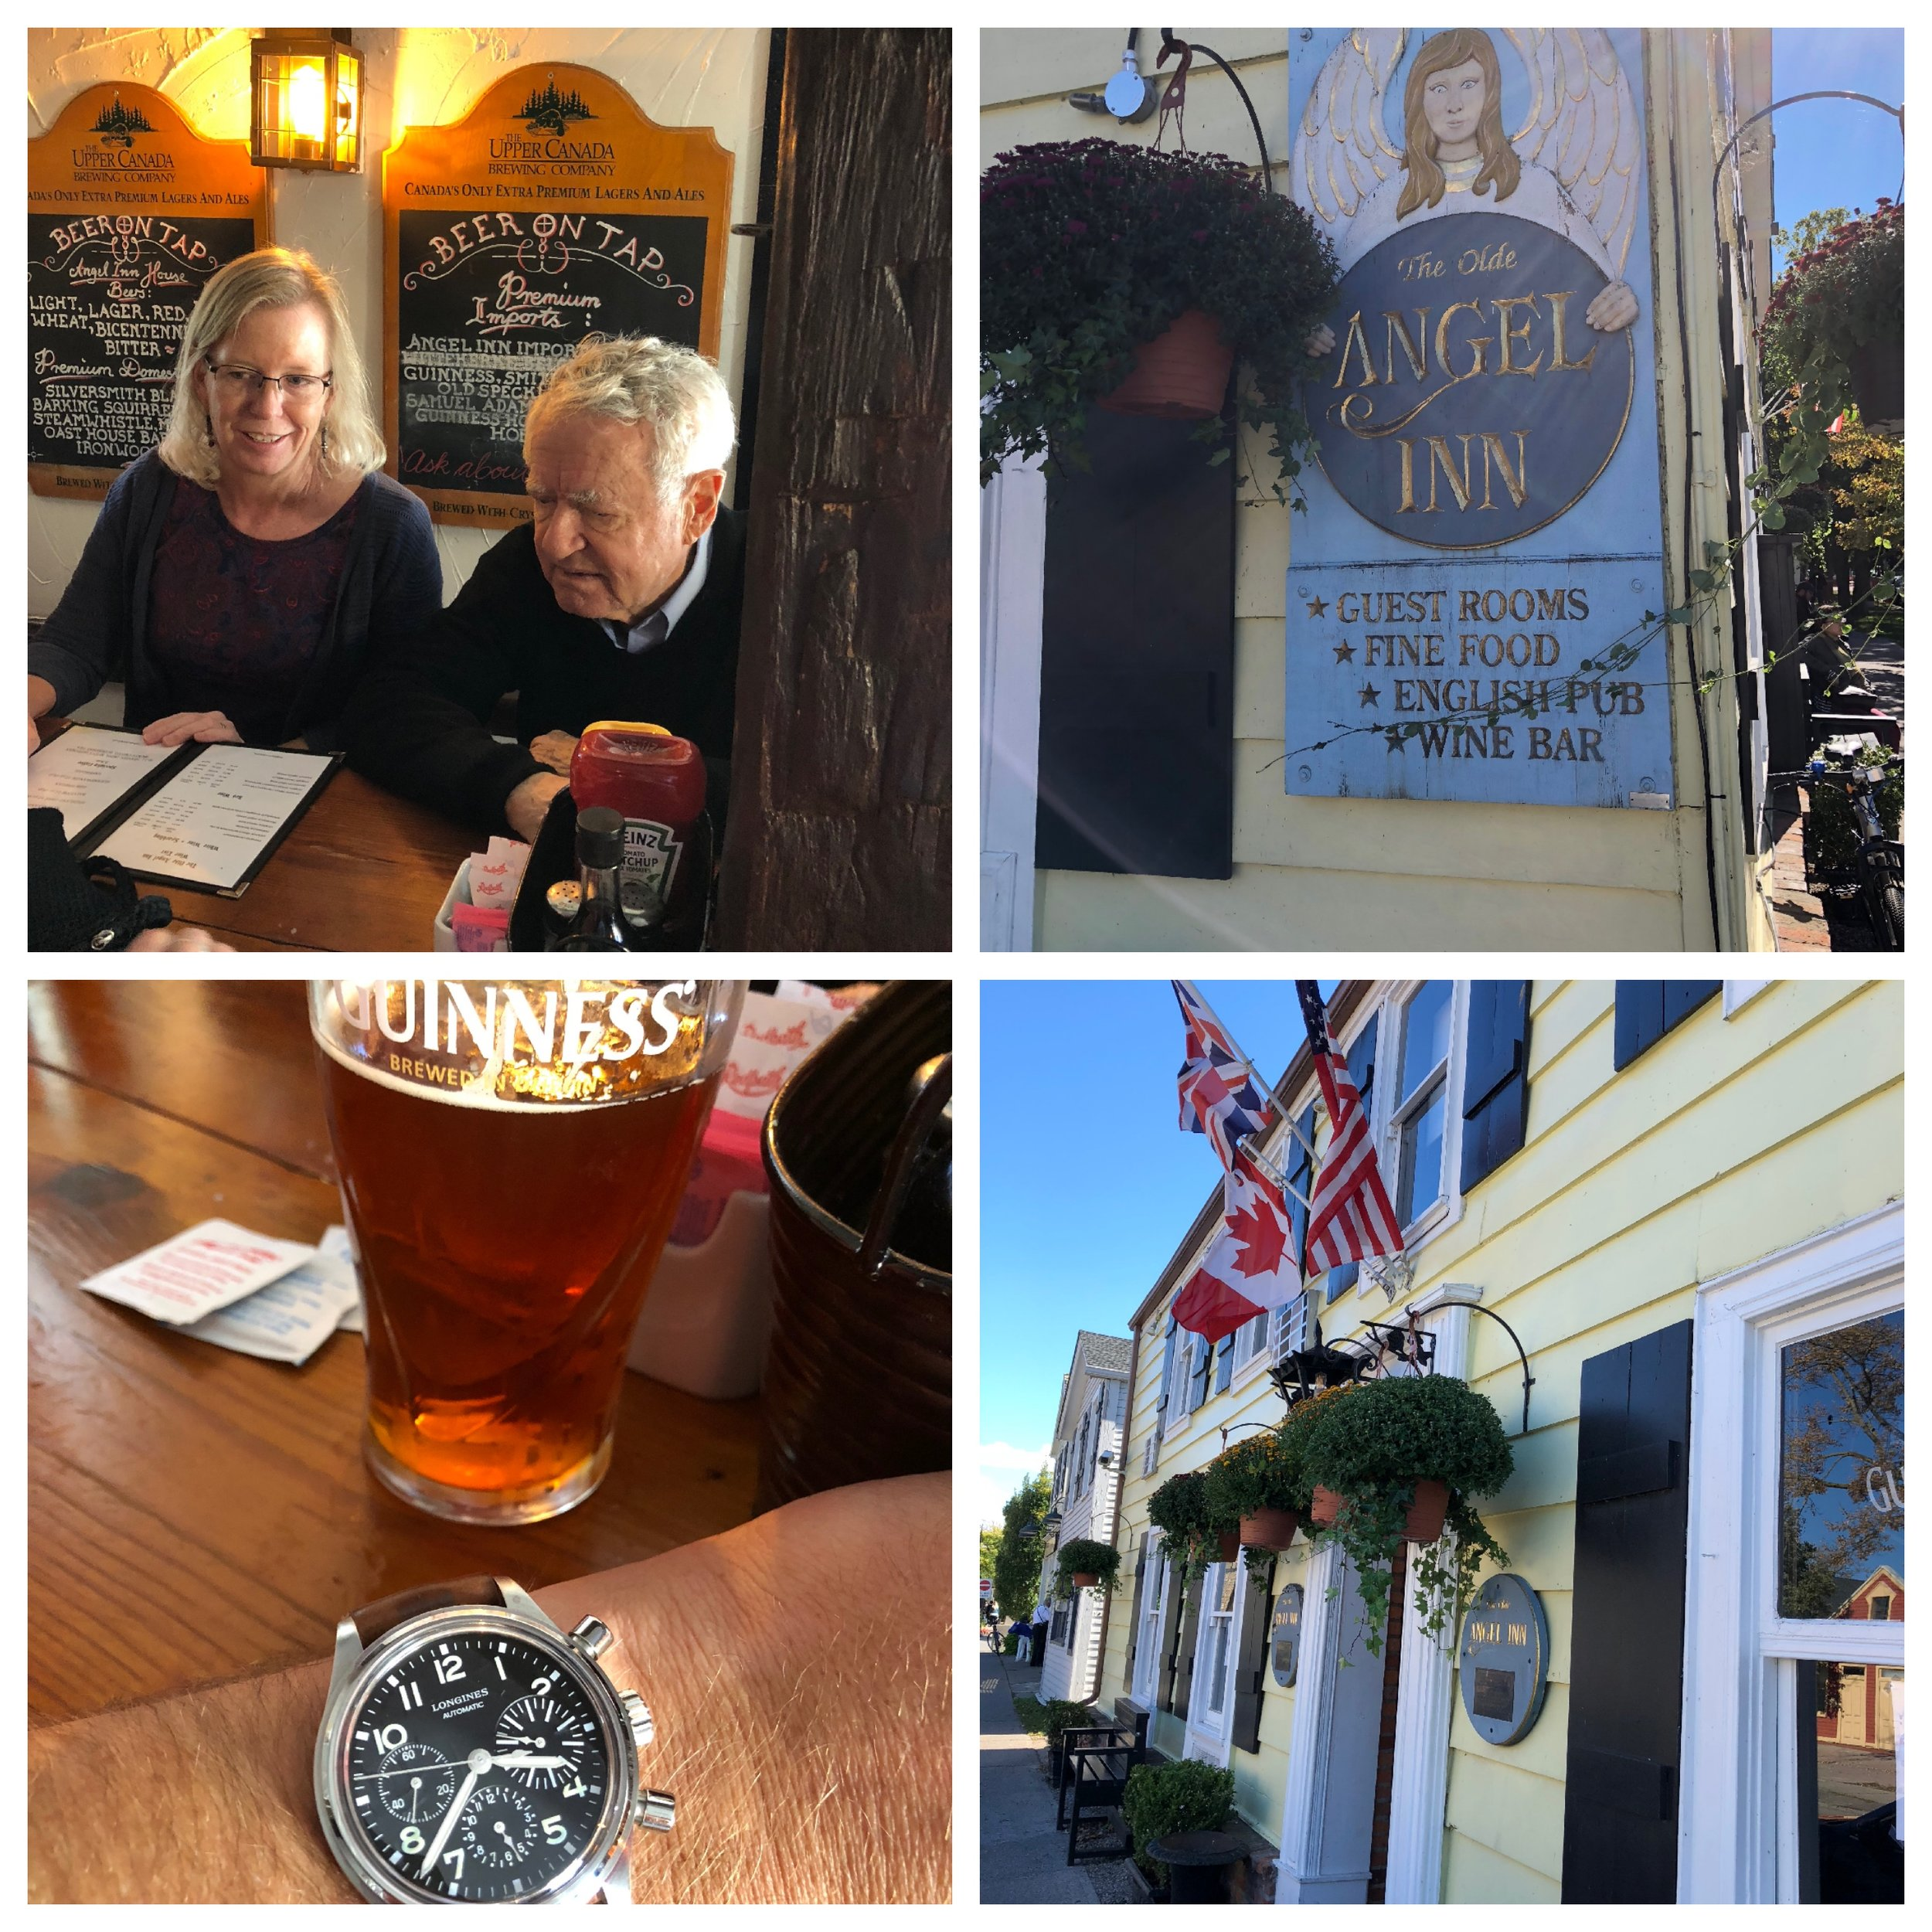 Pints at the Angel Inn are a not-to-be-missed stop when visiting NOTL.